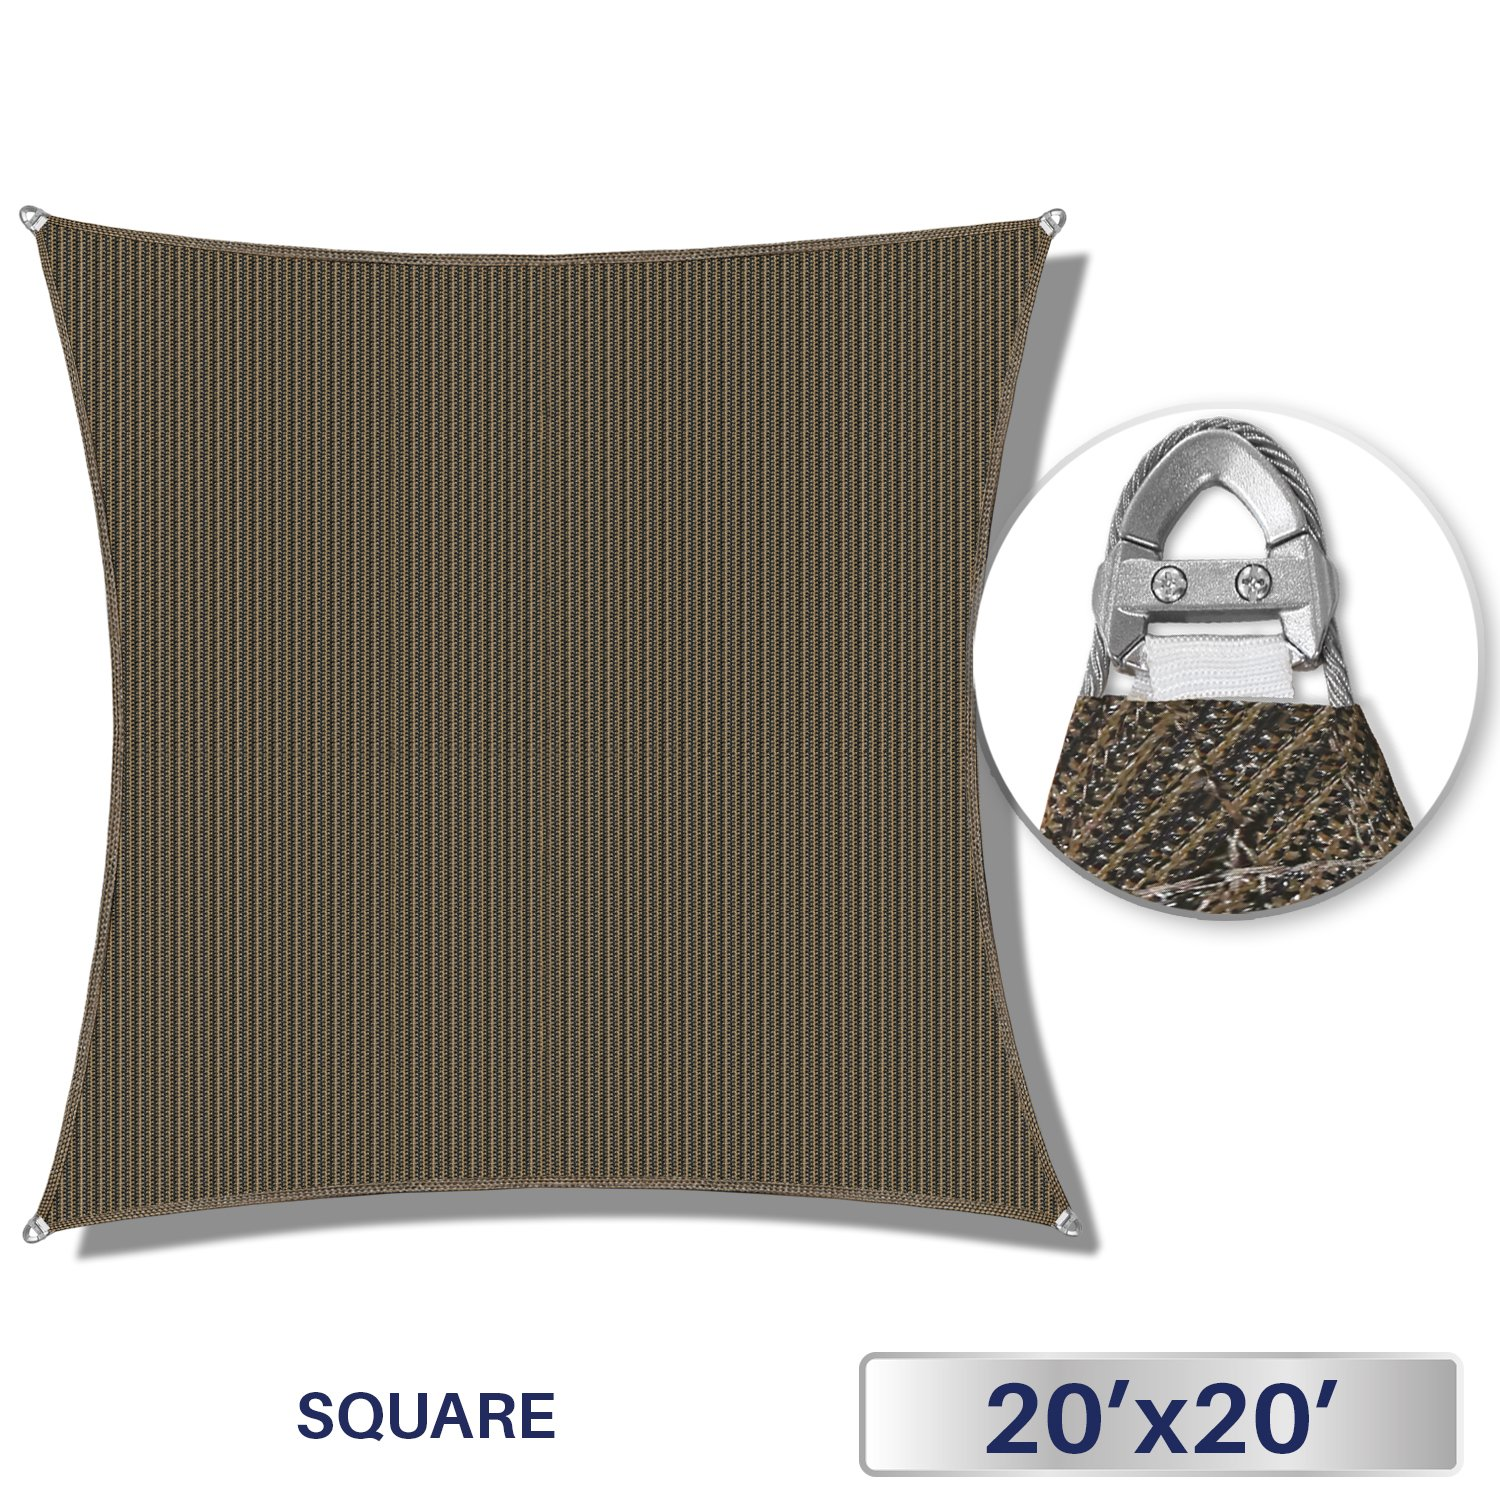 Windscreen4less A-Ring Reinforcement Large Sun Shade Sail 20' x 20' Rectangle Super Heavy Duty Strengthen Durable(260GSM)-Galvanized Cable Enhanced - Brown / 7 Year Warranty